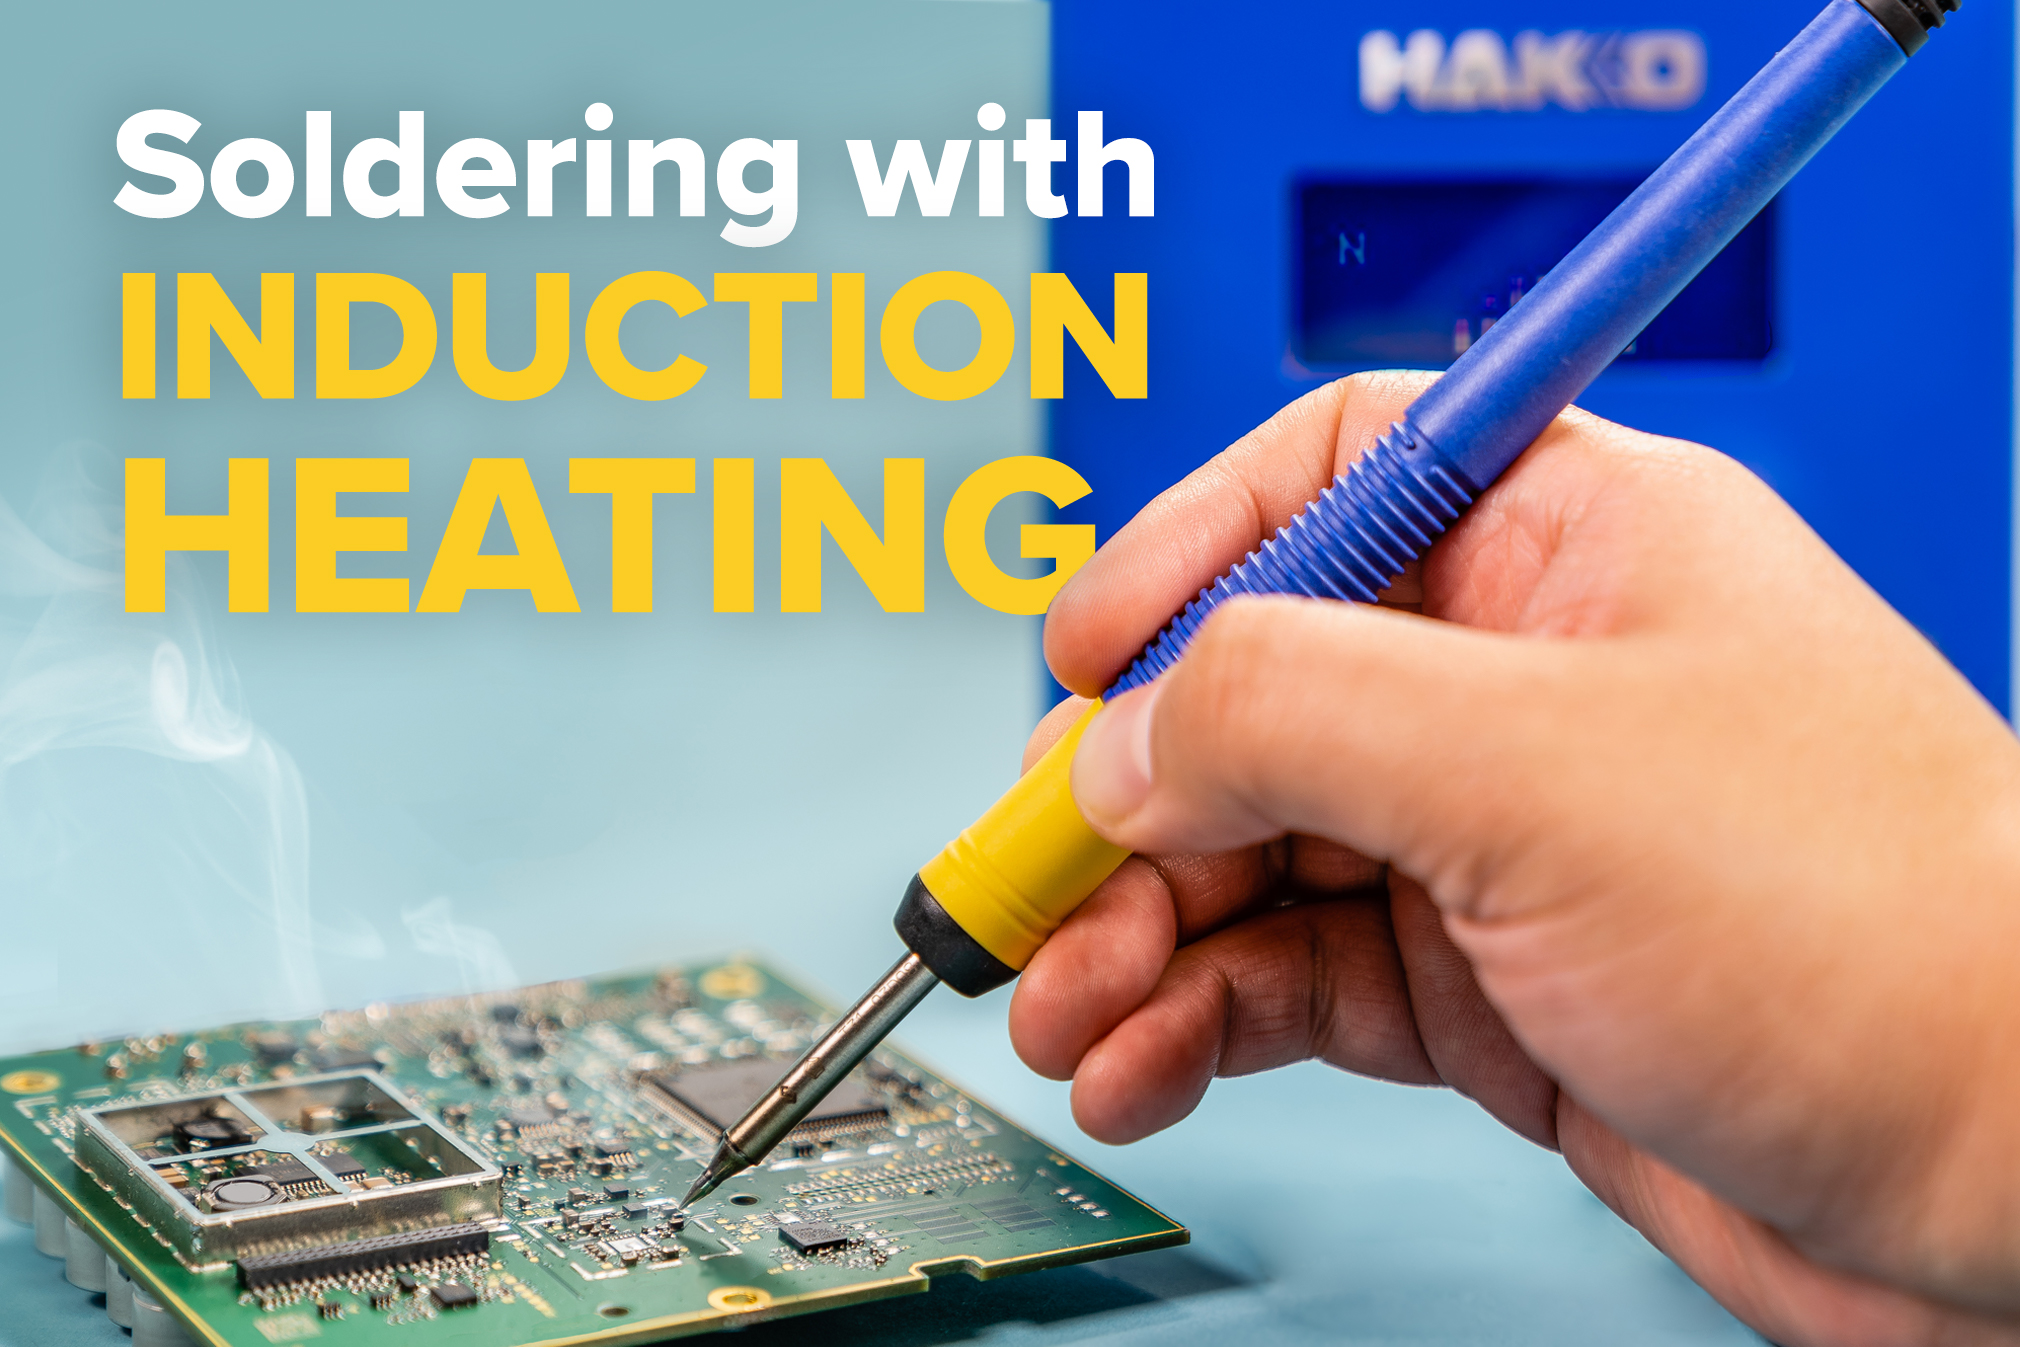 Soldering with Induction Heating